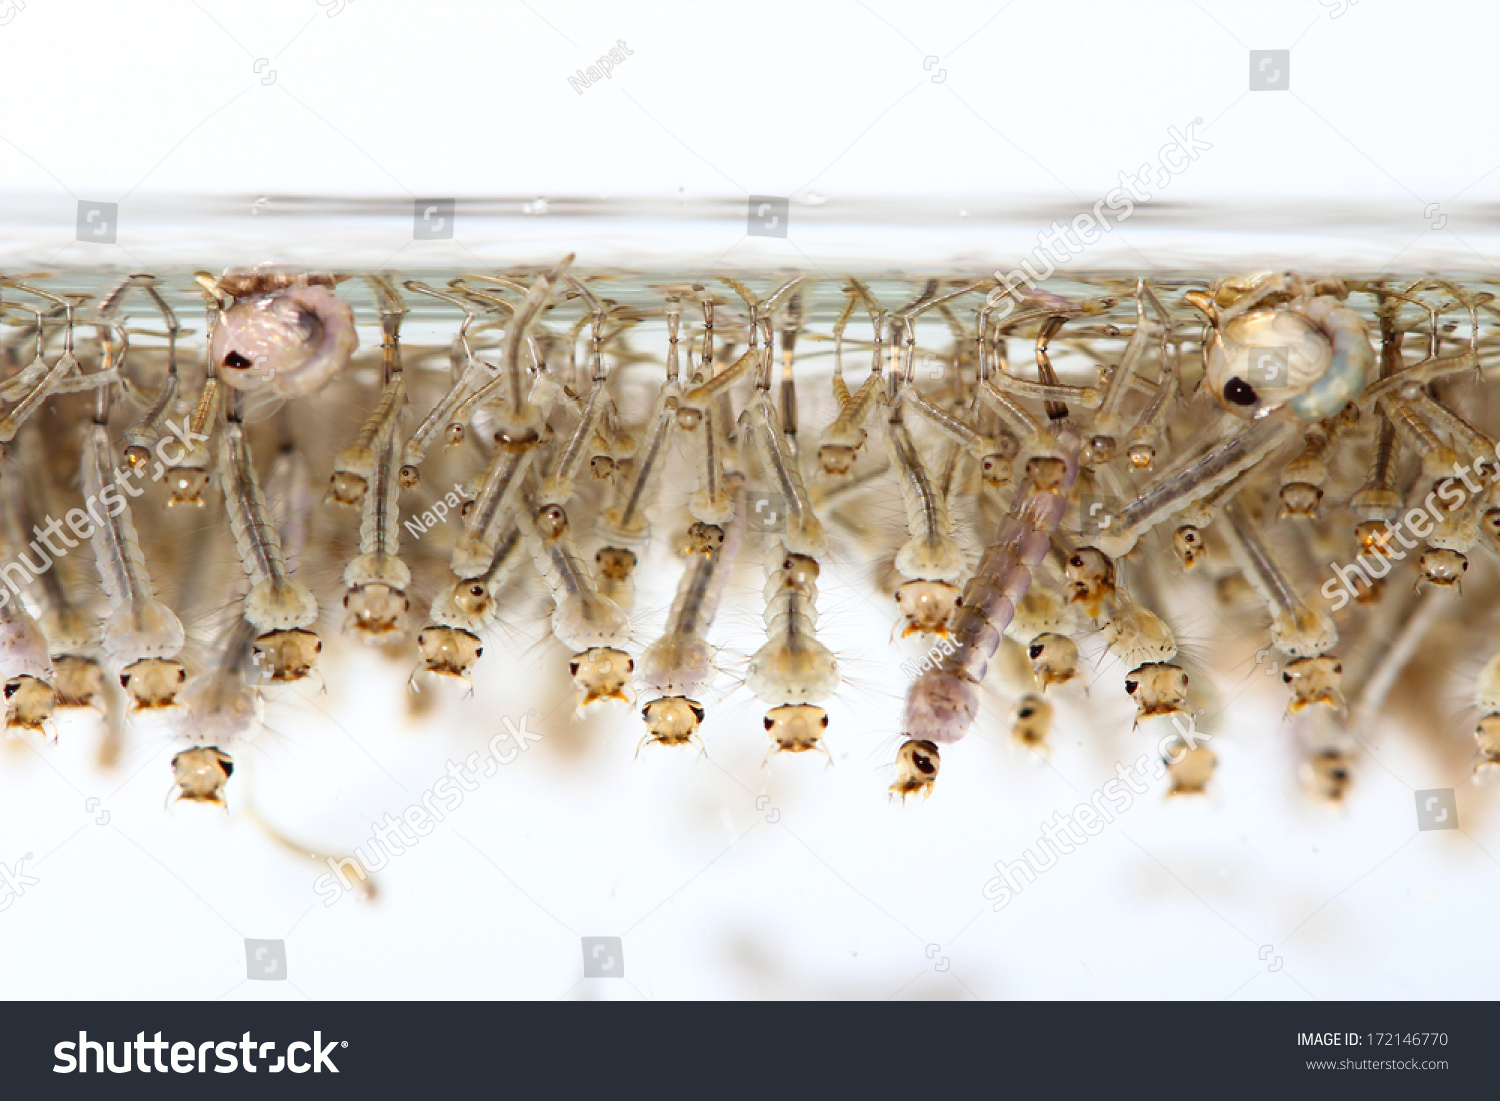 how to get mosquito larvae